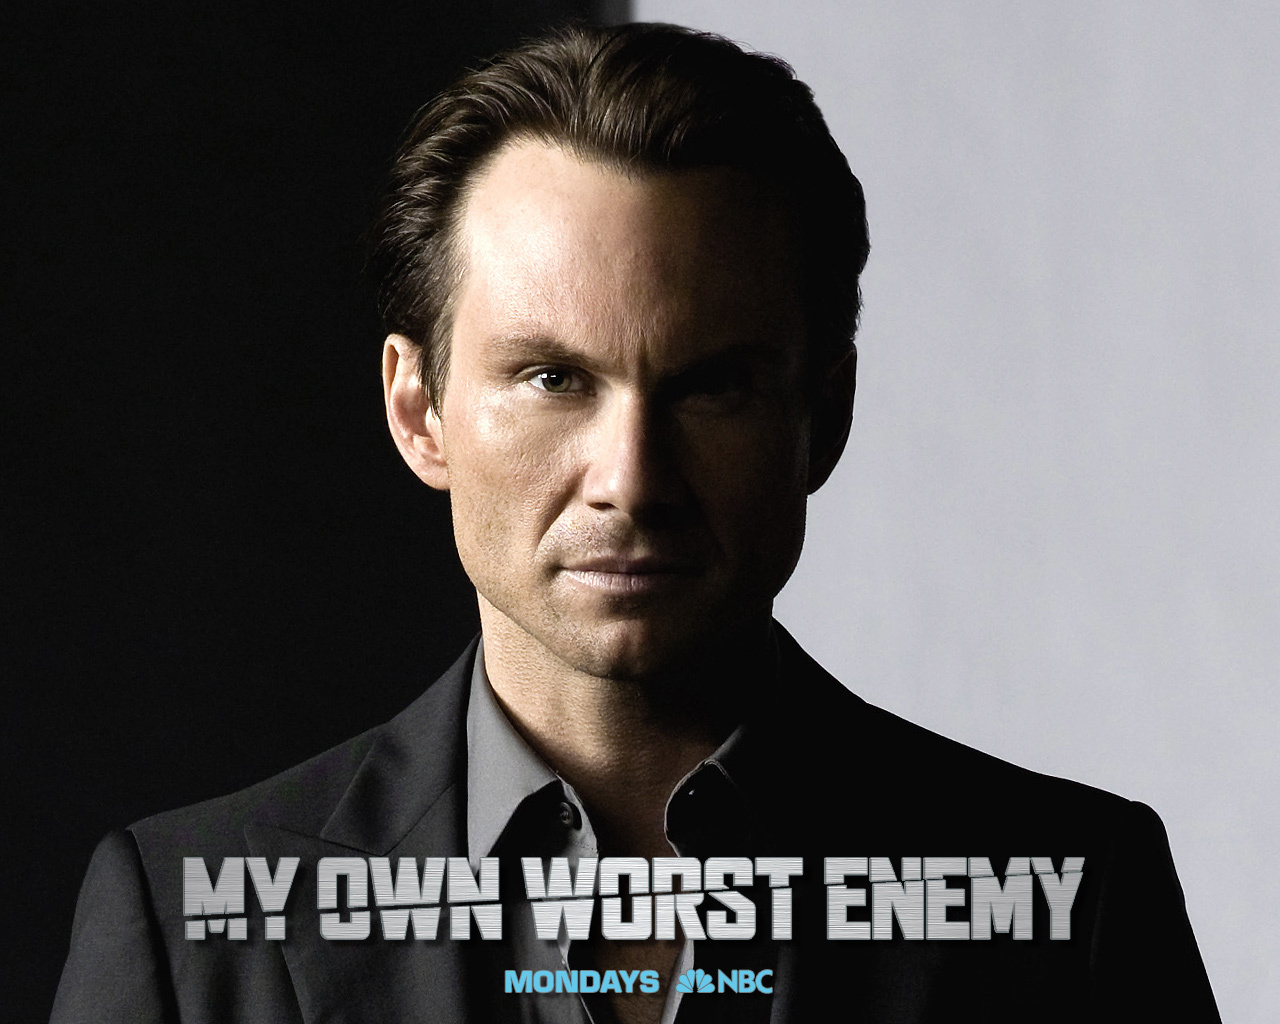 My Own Worst Enemy (song)